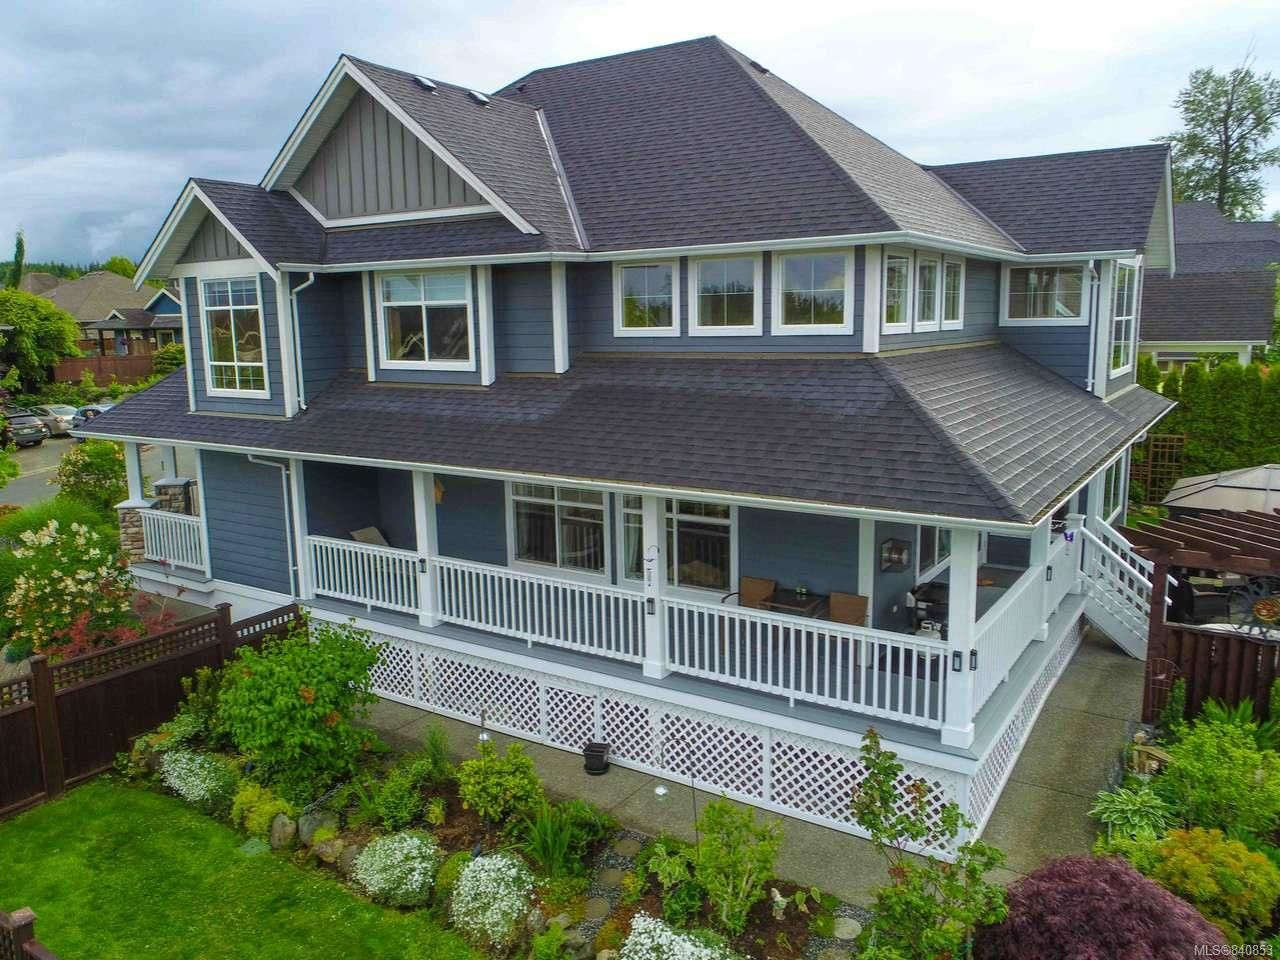 Photo 73: Photos: 206 Marie Pl in CAMPBELL RIVER: CR Willow Point House for sale (Campbell River)  : MLS®# 840853